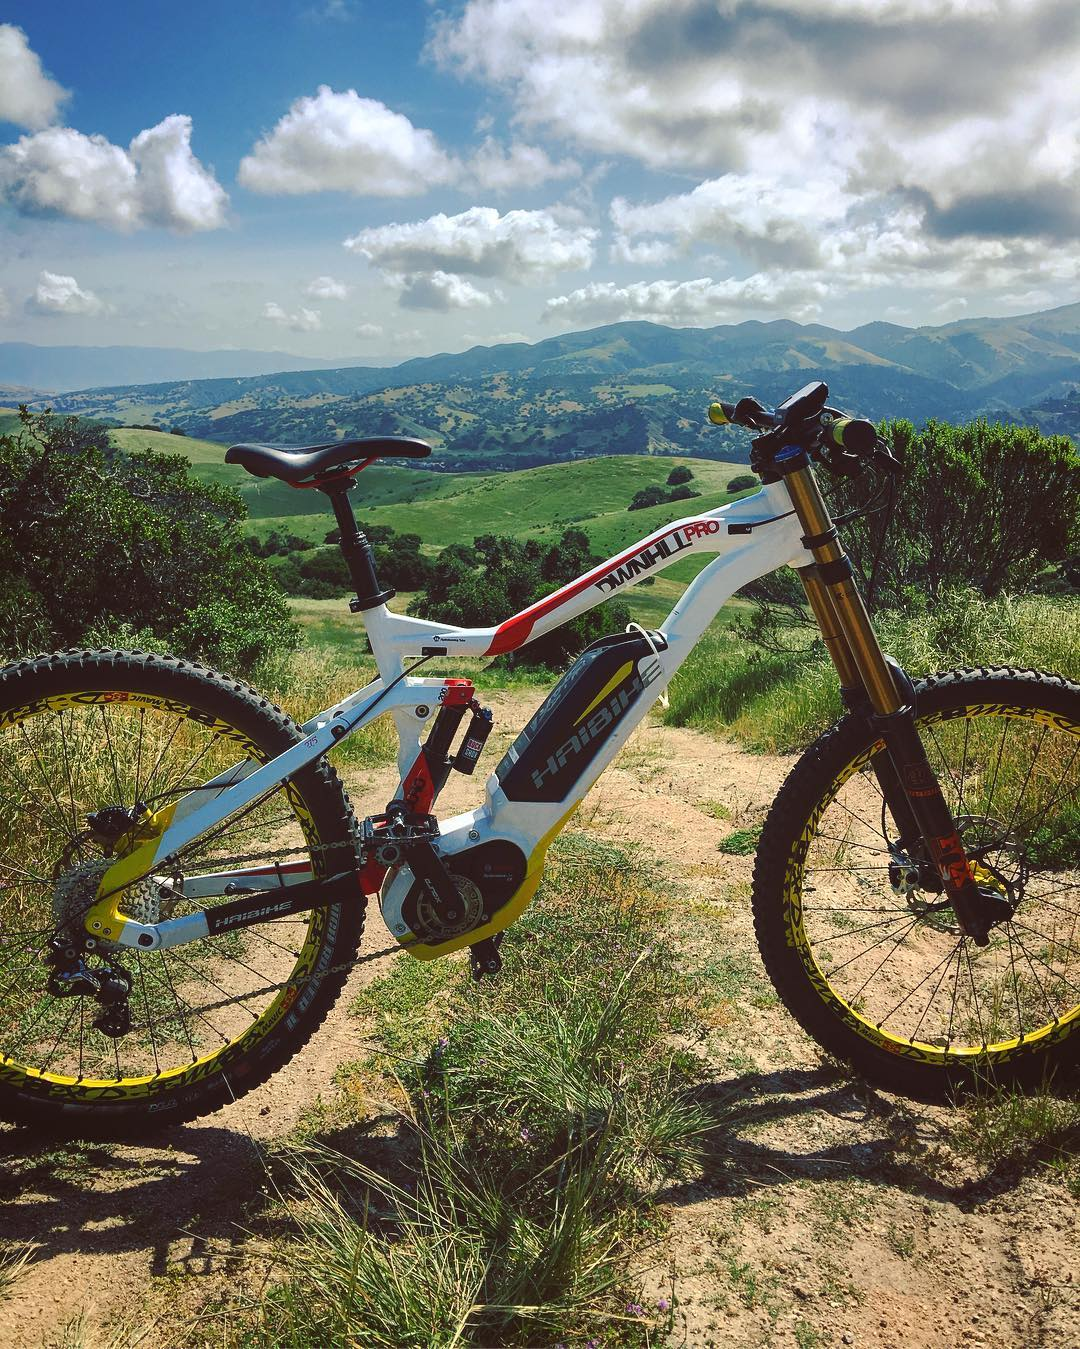 We hope your #haibike is taking you to some epic places this weekend! #xduro #emtb #dh #downhill #eperformance #ebike #mtb